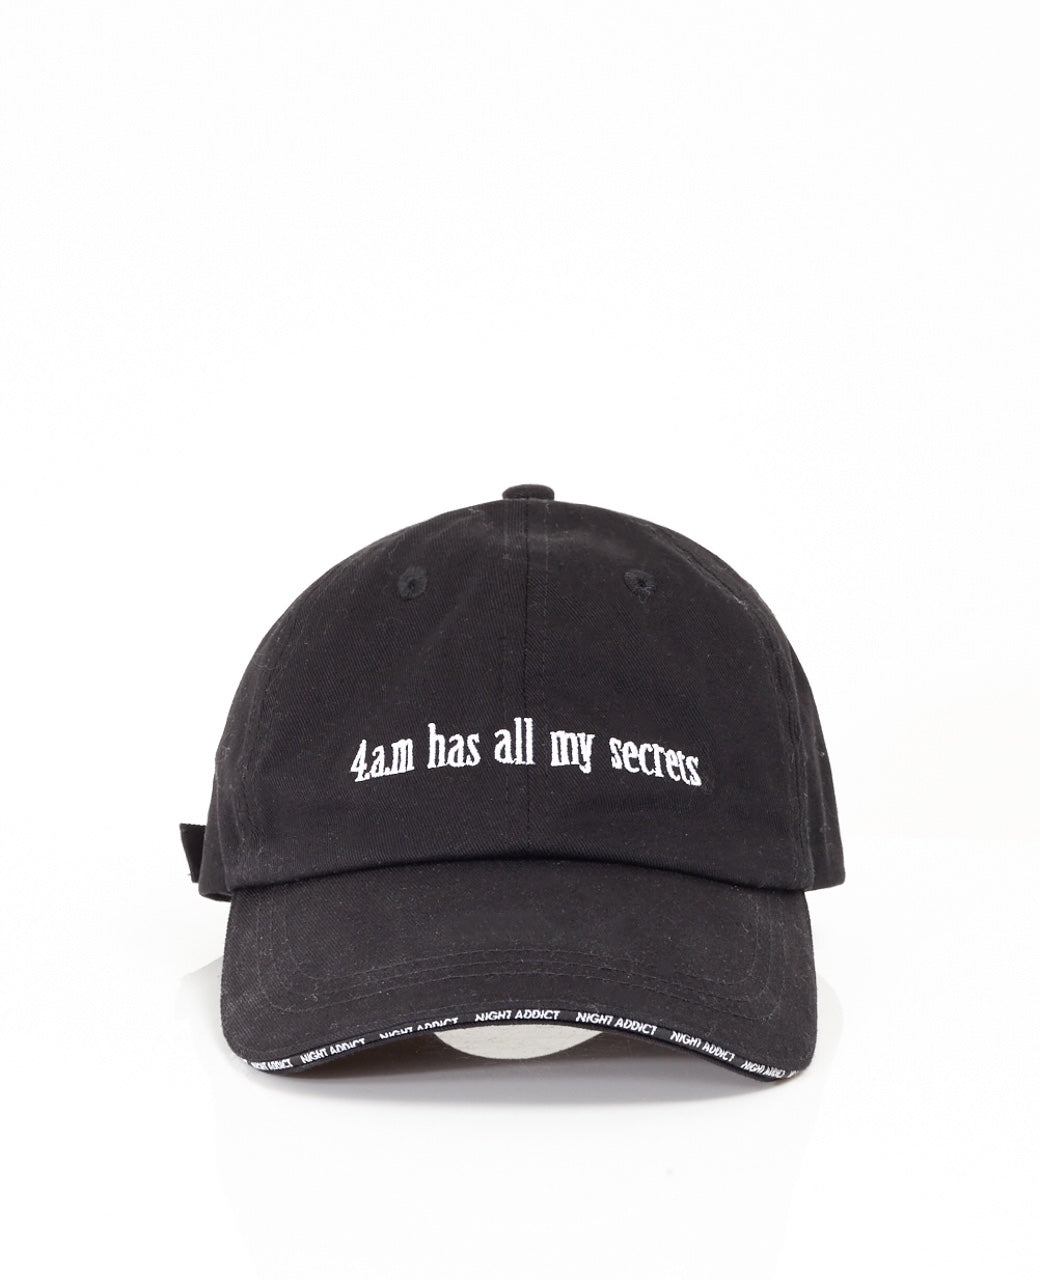 4AM HAS ALL MY SECRETS HAT